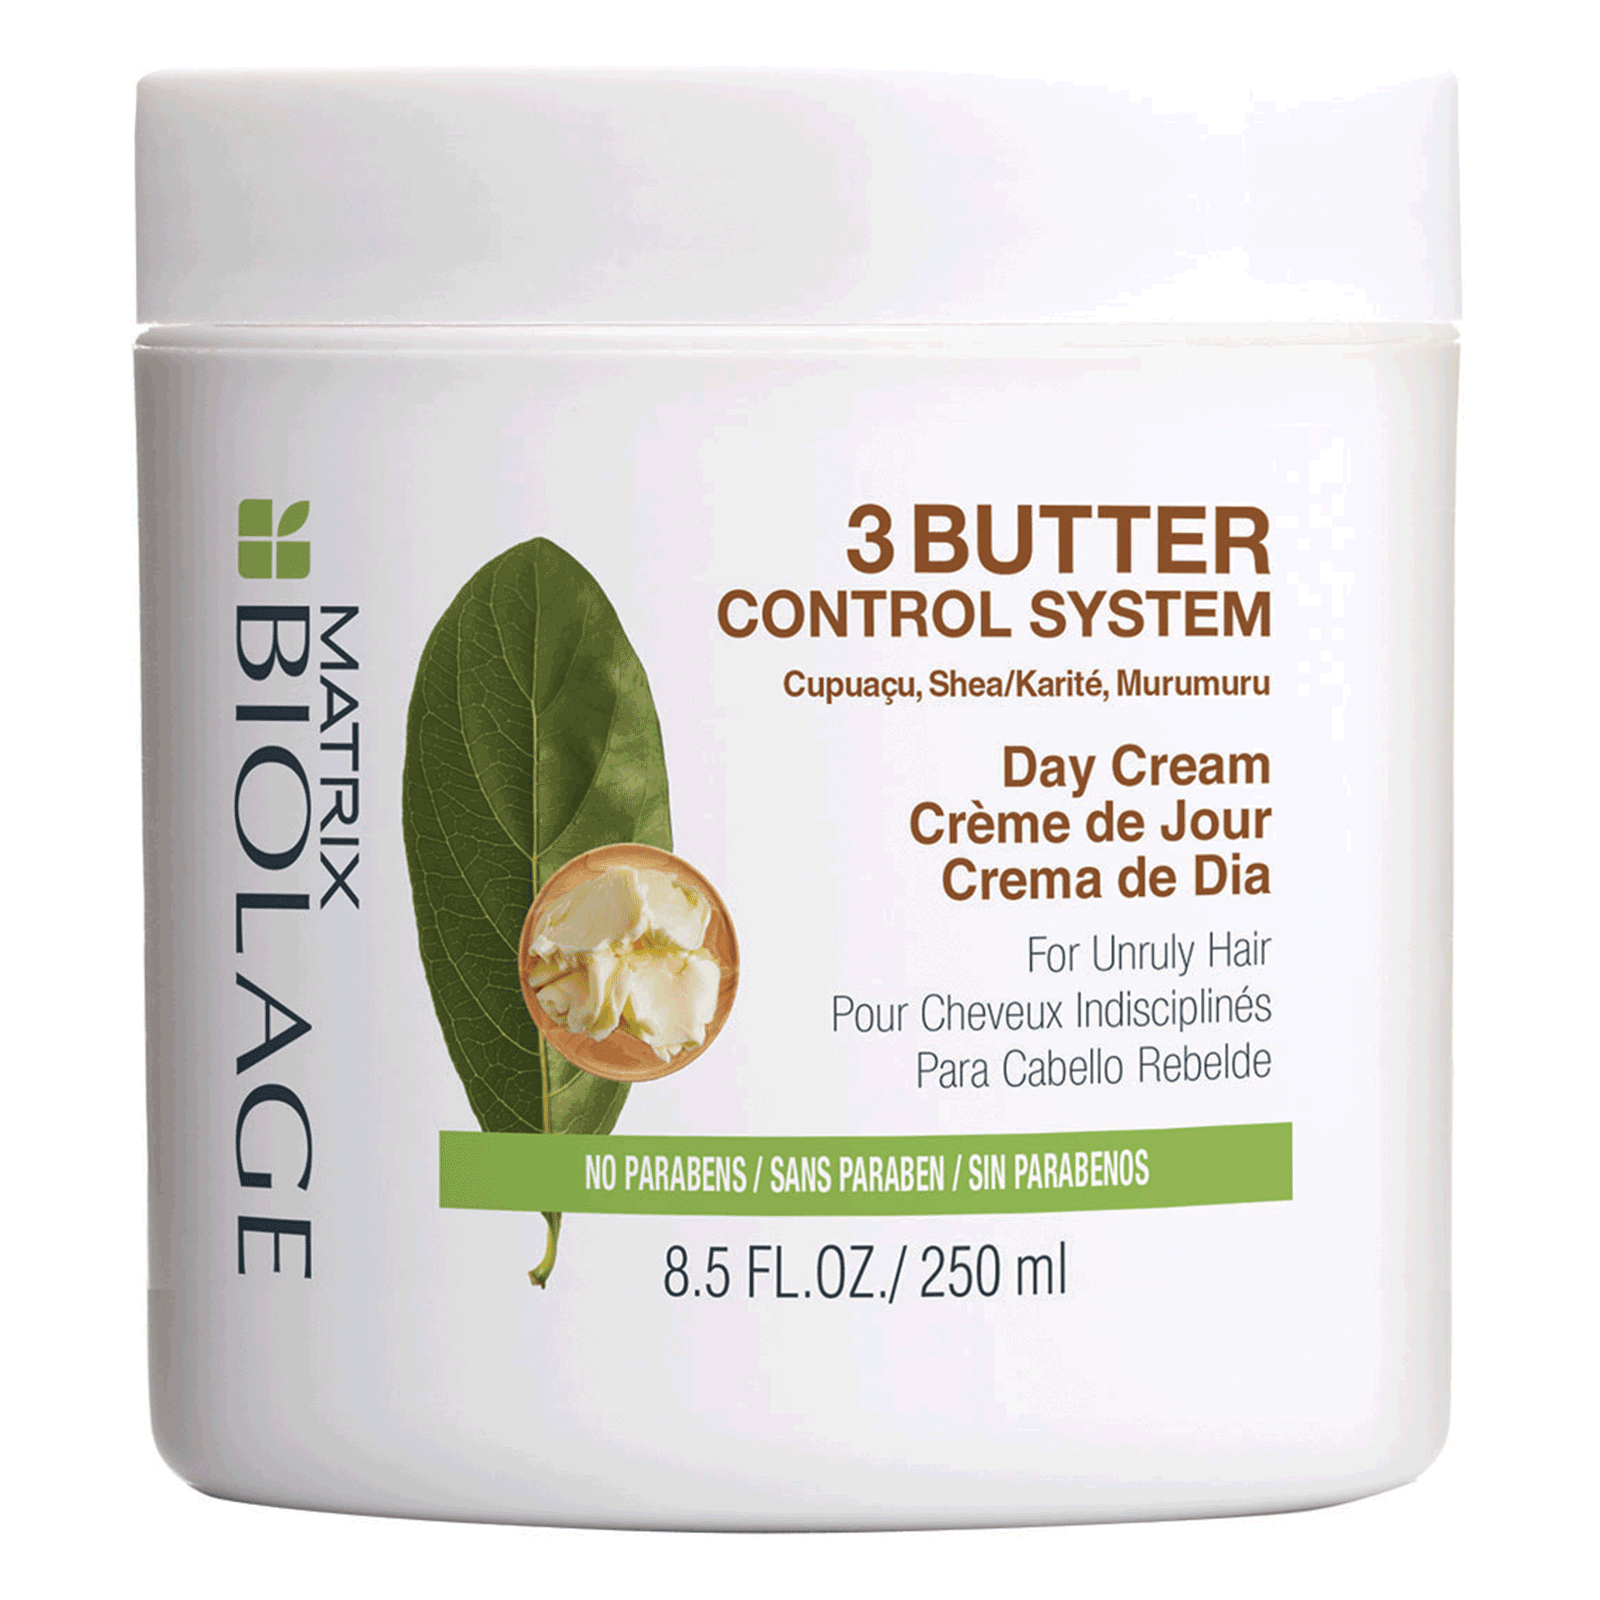 NEW Matrix Biolage 3 Butter Control System Day Cream 8.5 Oz ~ For Unruly Hair - $18.75